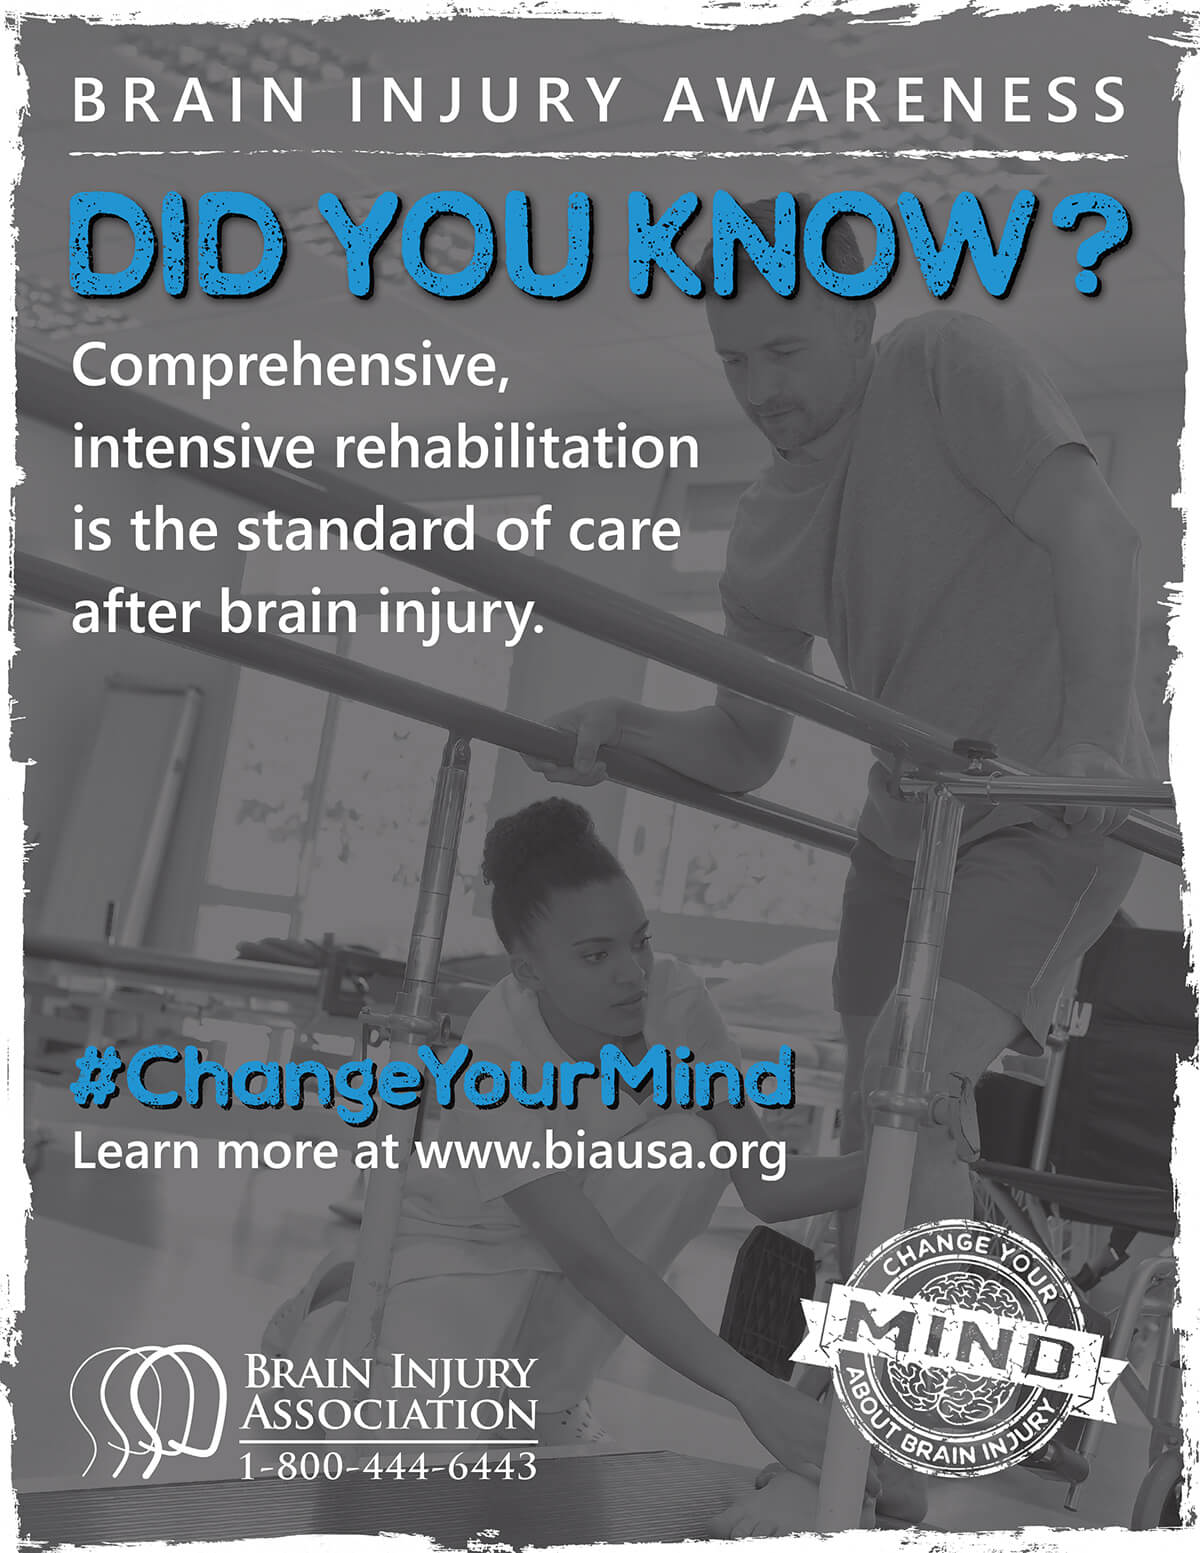 #ChangeYourMind Awareness Campaign: Rehabilitation Download Preview